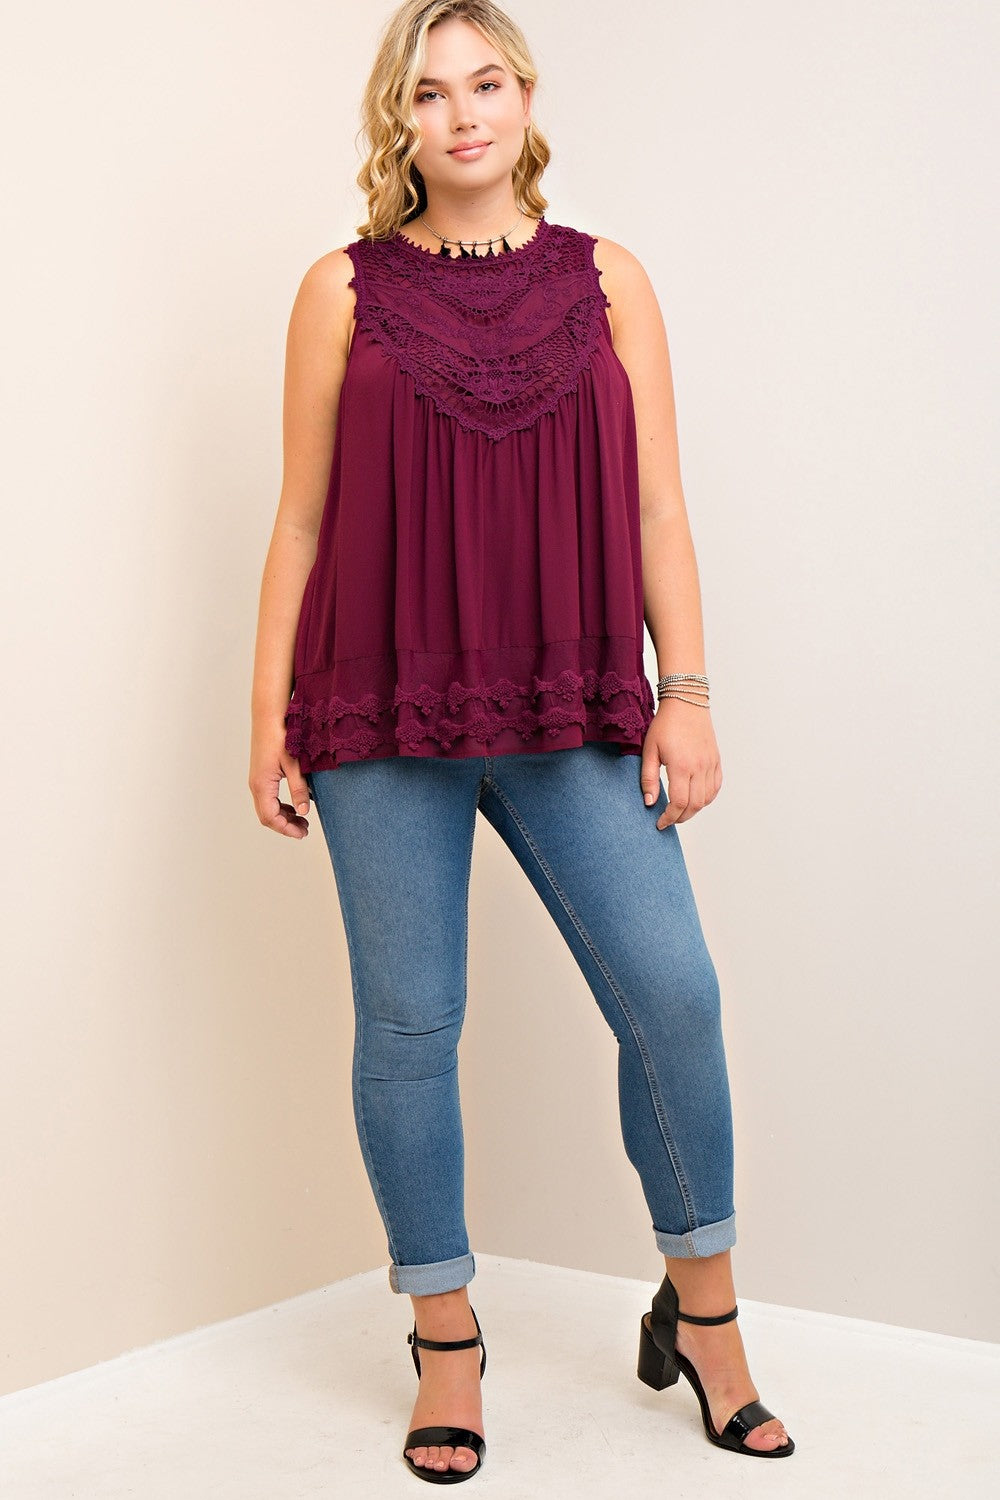 Full front view young plus size woman wearing wine colored sleeveless crochet trim top